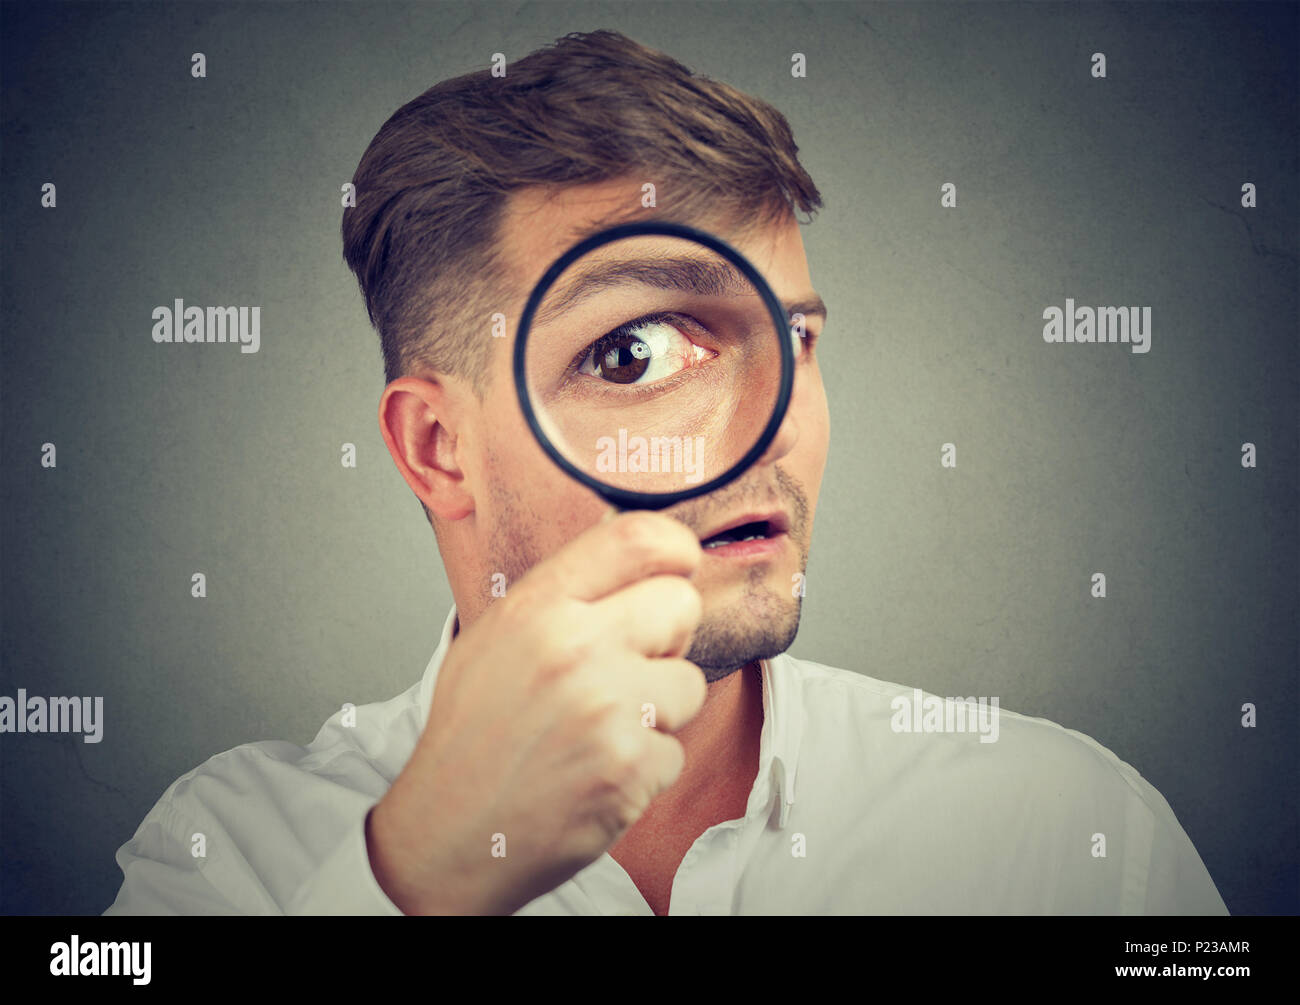 Young expressive man looking shocked while looking at camera through magnifier. - Stock Image